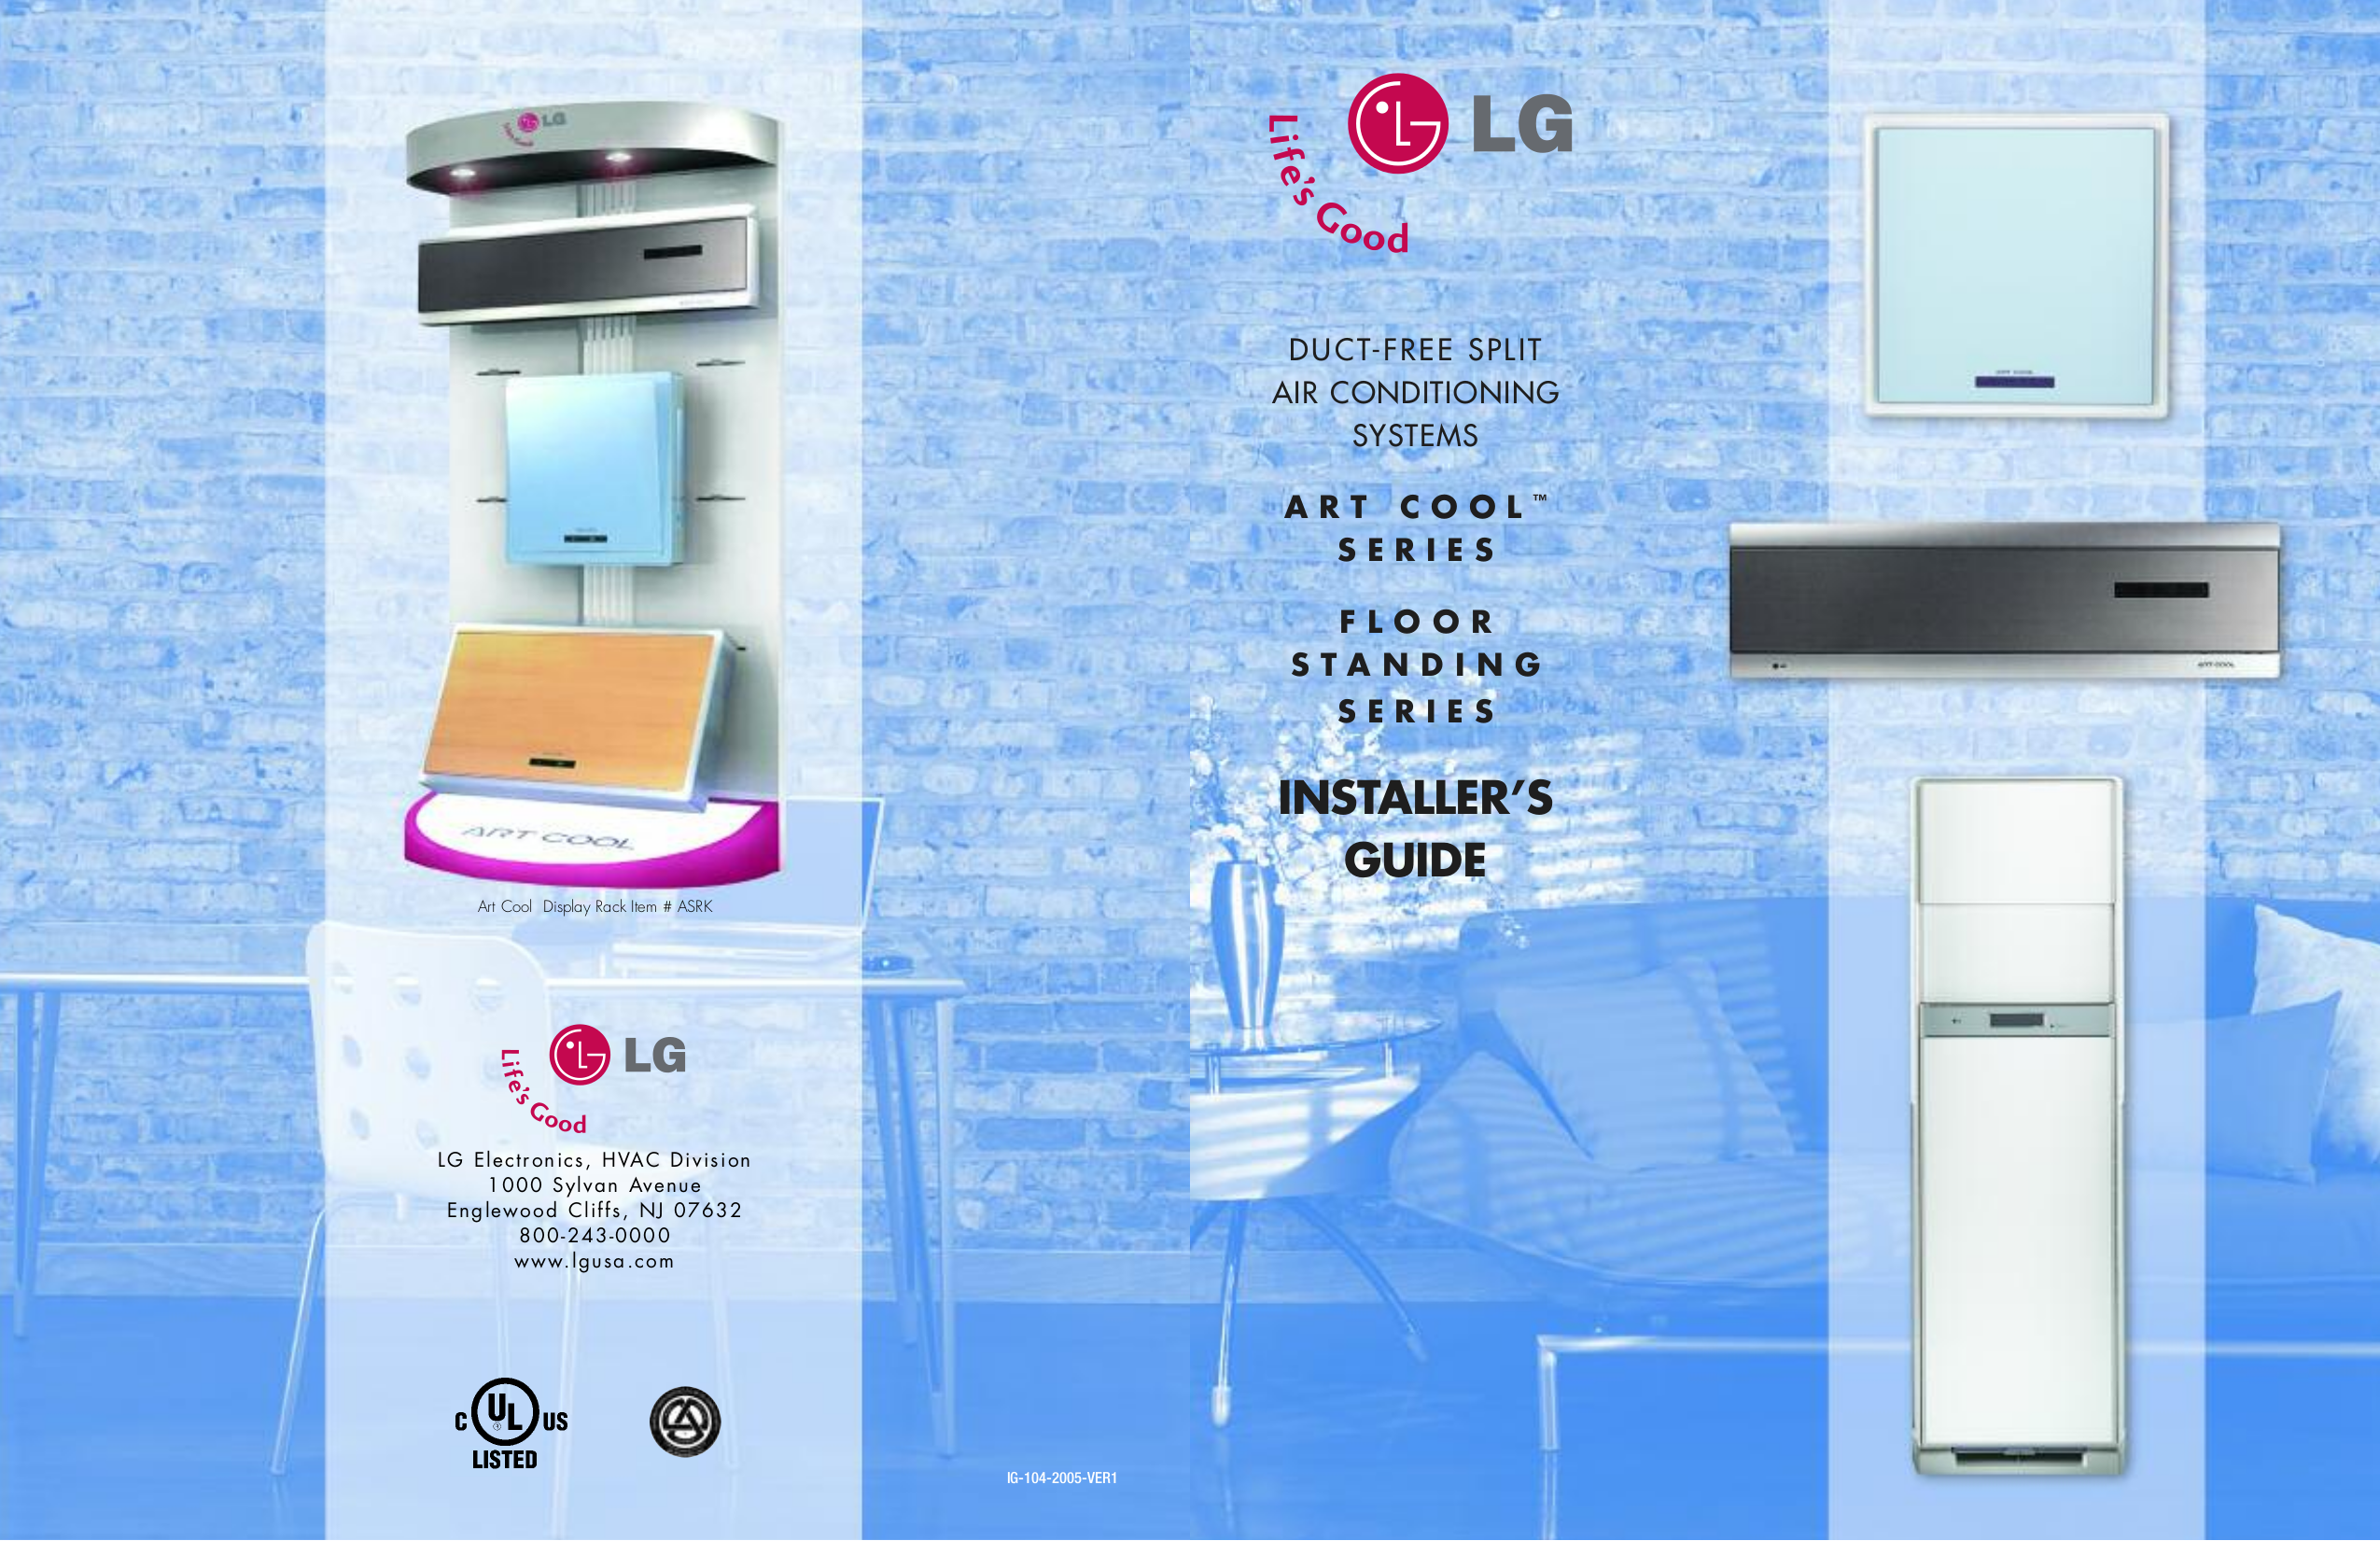 Air Conditioner Lg Art cool Manual